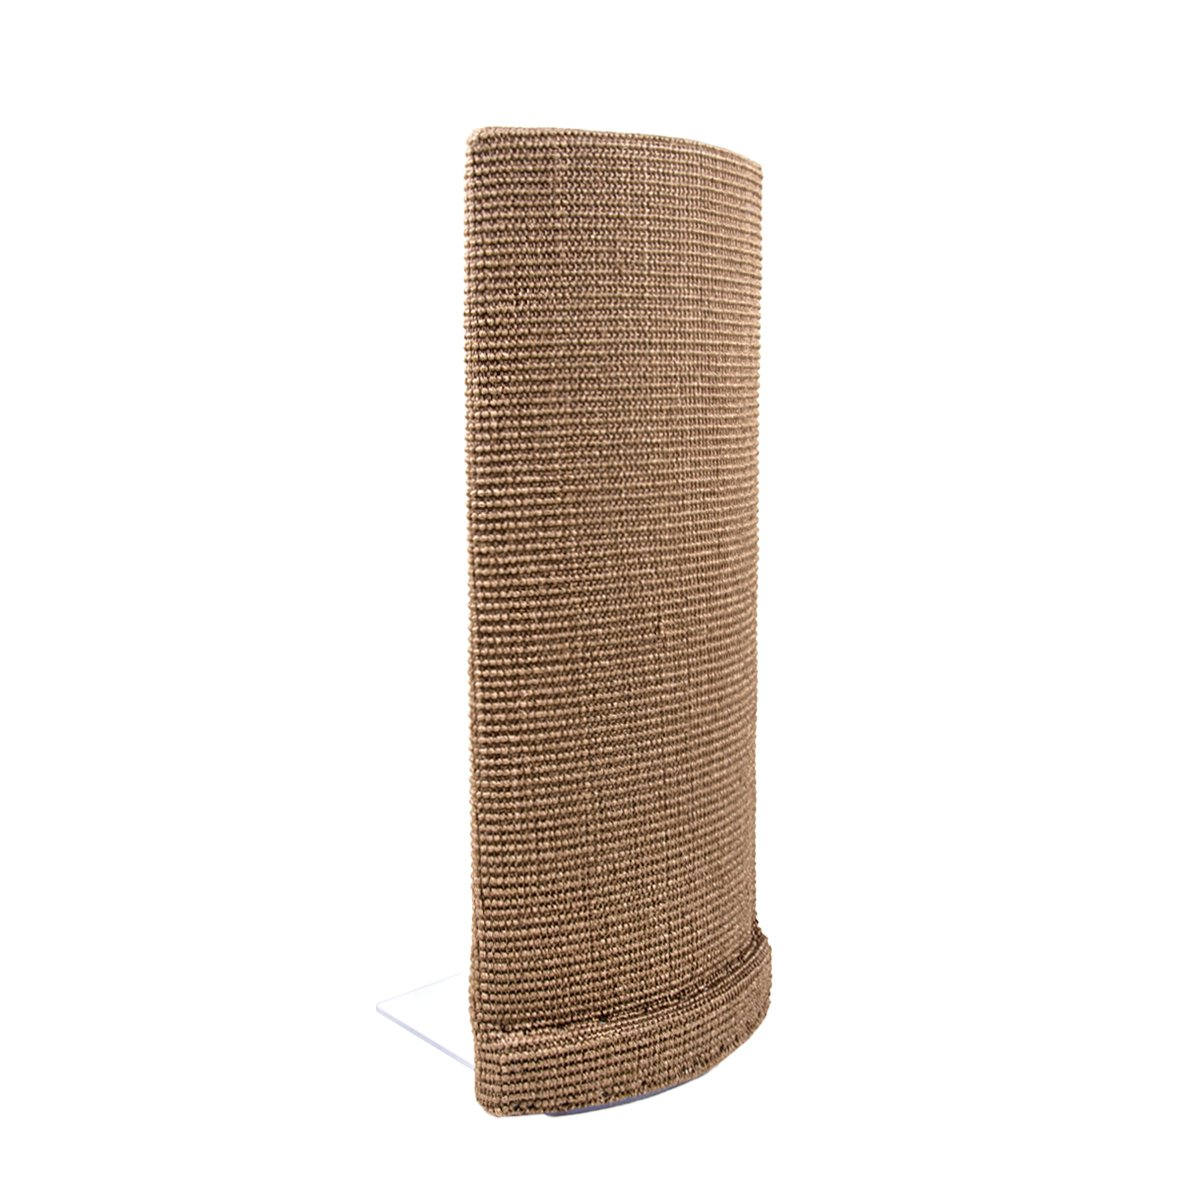 'Sofa-Scratcher' Cat Scratching Post & Couch-Corner / Furniture Protector (Light Brown) by Sofa-Scratcher (Image #1)